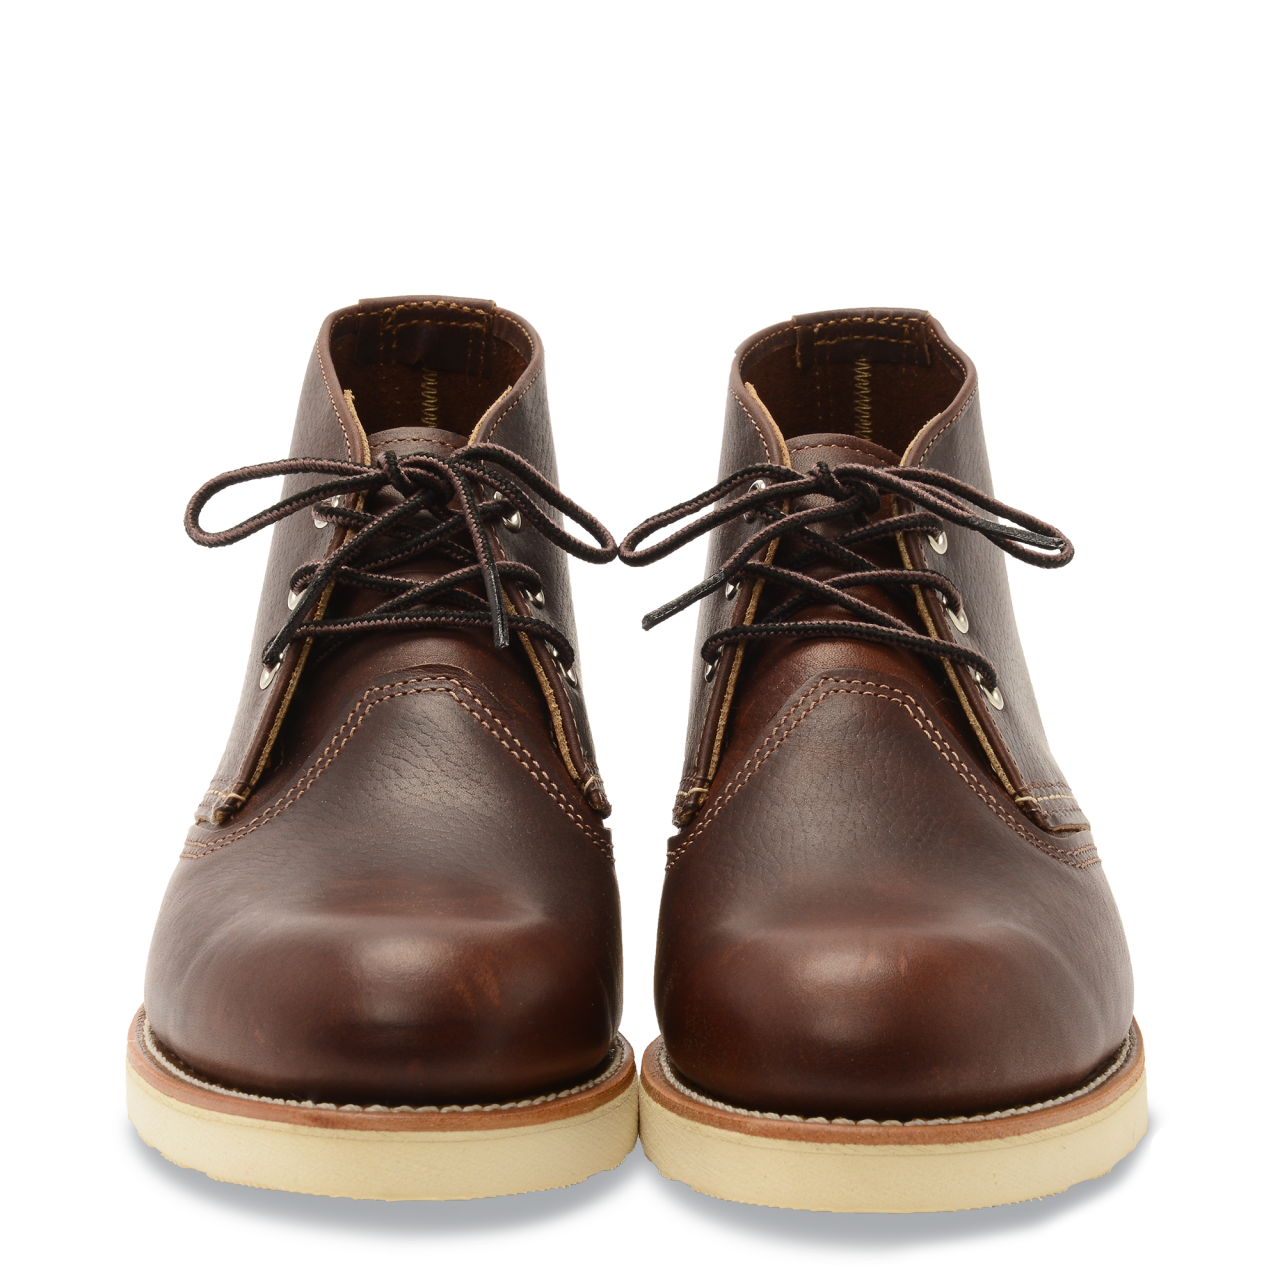 Red Wing 3141 Work Chukka